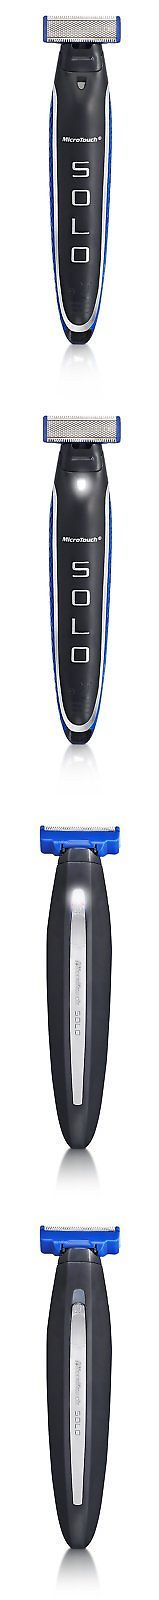 Mens Shavers: Rechargeable Shaver And Trimmer Includes 3 Additional Trimming Combs New -> BUY IT NOW ONLY: $30.41 on eBay!